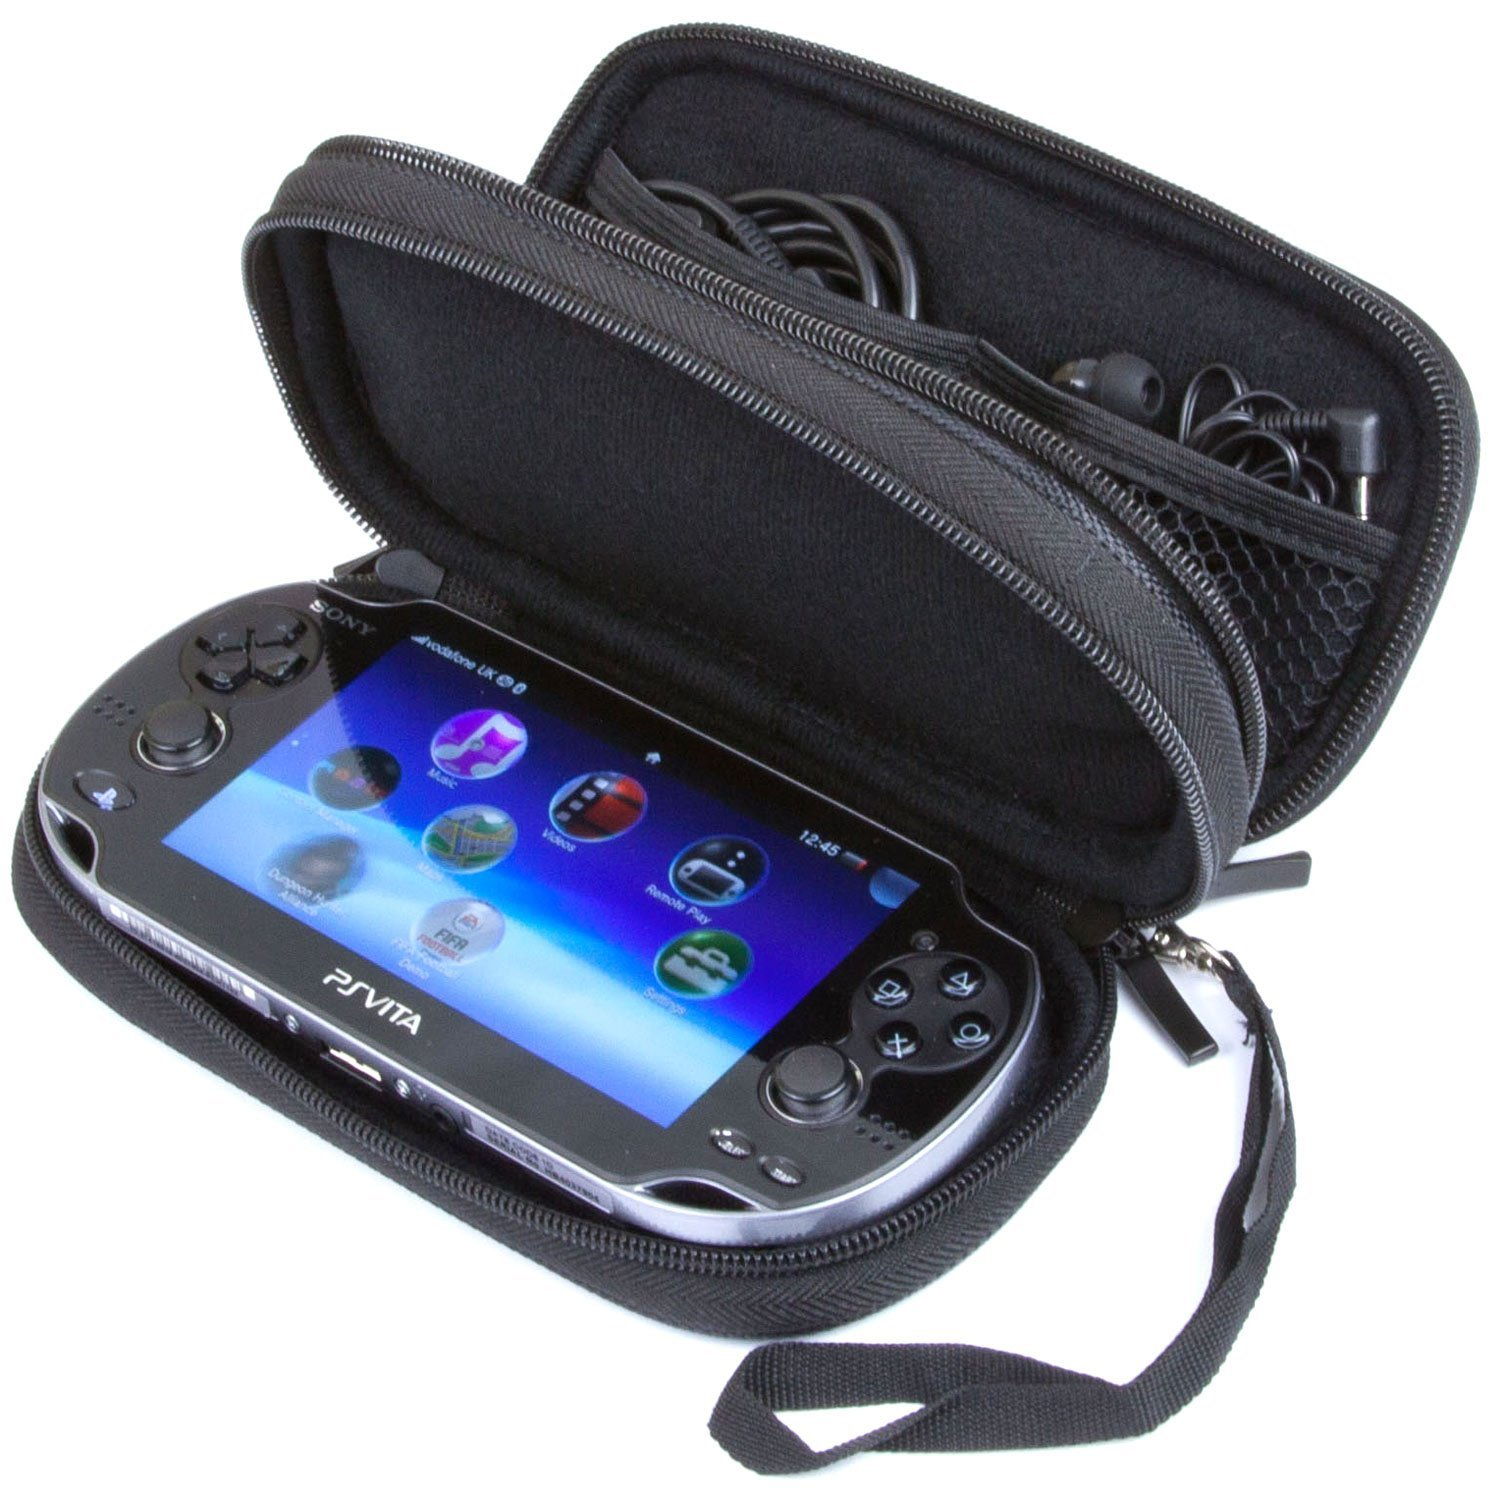 Sony Ps Vita Game Cartridge : Butterfox double compartment carry case for ps vita and